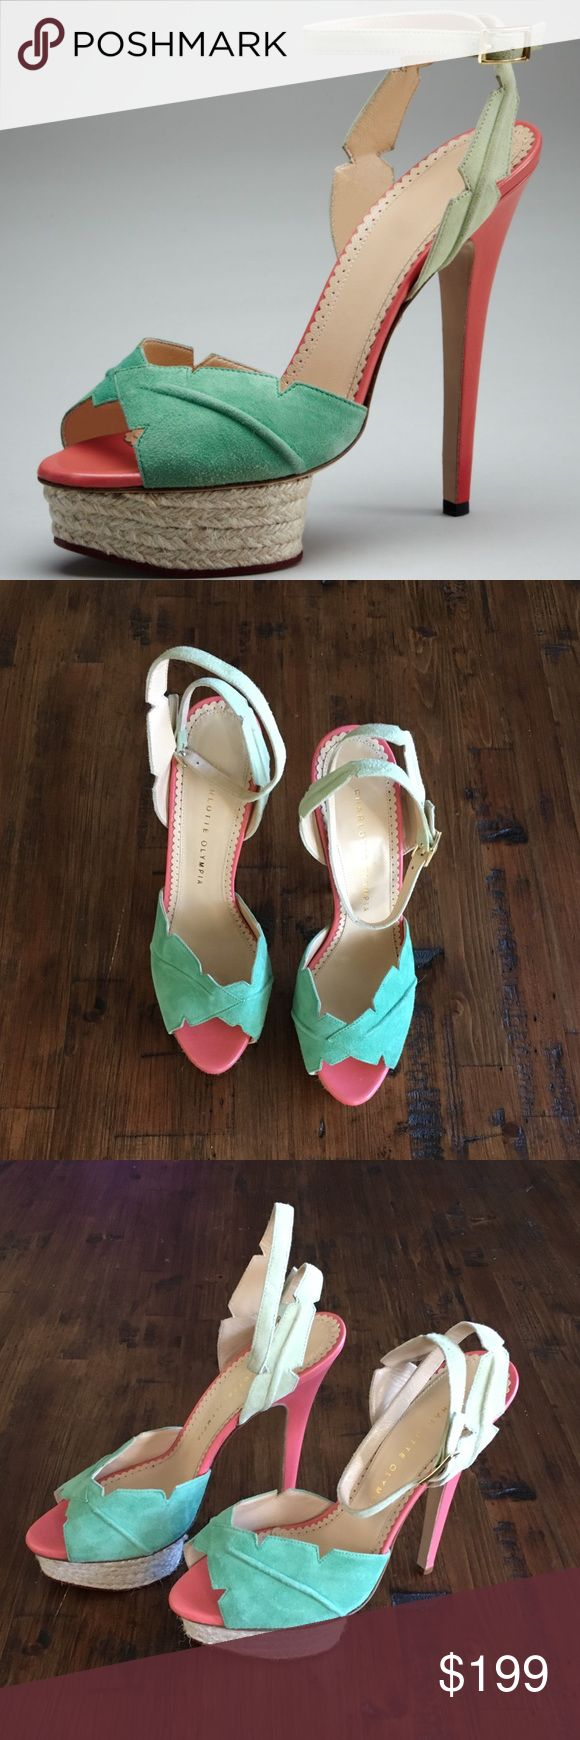 """Charlotte Olympia Charlotte Olympia Isla Leaf Espadrille-Platform ▫️Brand new without box or dust bag ▫️VERY Minor wear to ankle strap and back        heel of footpad due to being in storage        (See last pic) ▫️ Two-tone soft kid suede with raised,        cutout leaf effect ▫️Jute-covered island platform: 1.5"""" ▫️Adjustable-buckled ankle-wrap ▫️5.75"""" leather-covered heel ▫️From smoke-free, pet friendly home ❗️PRICE FIRM UNLESS BUNDLING 🚫NO trades, lowball offers, off-Posh…"""